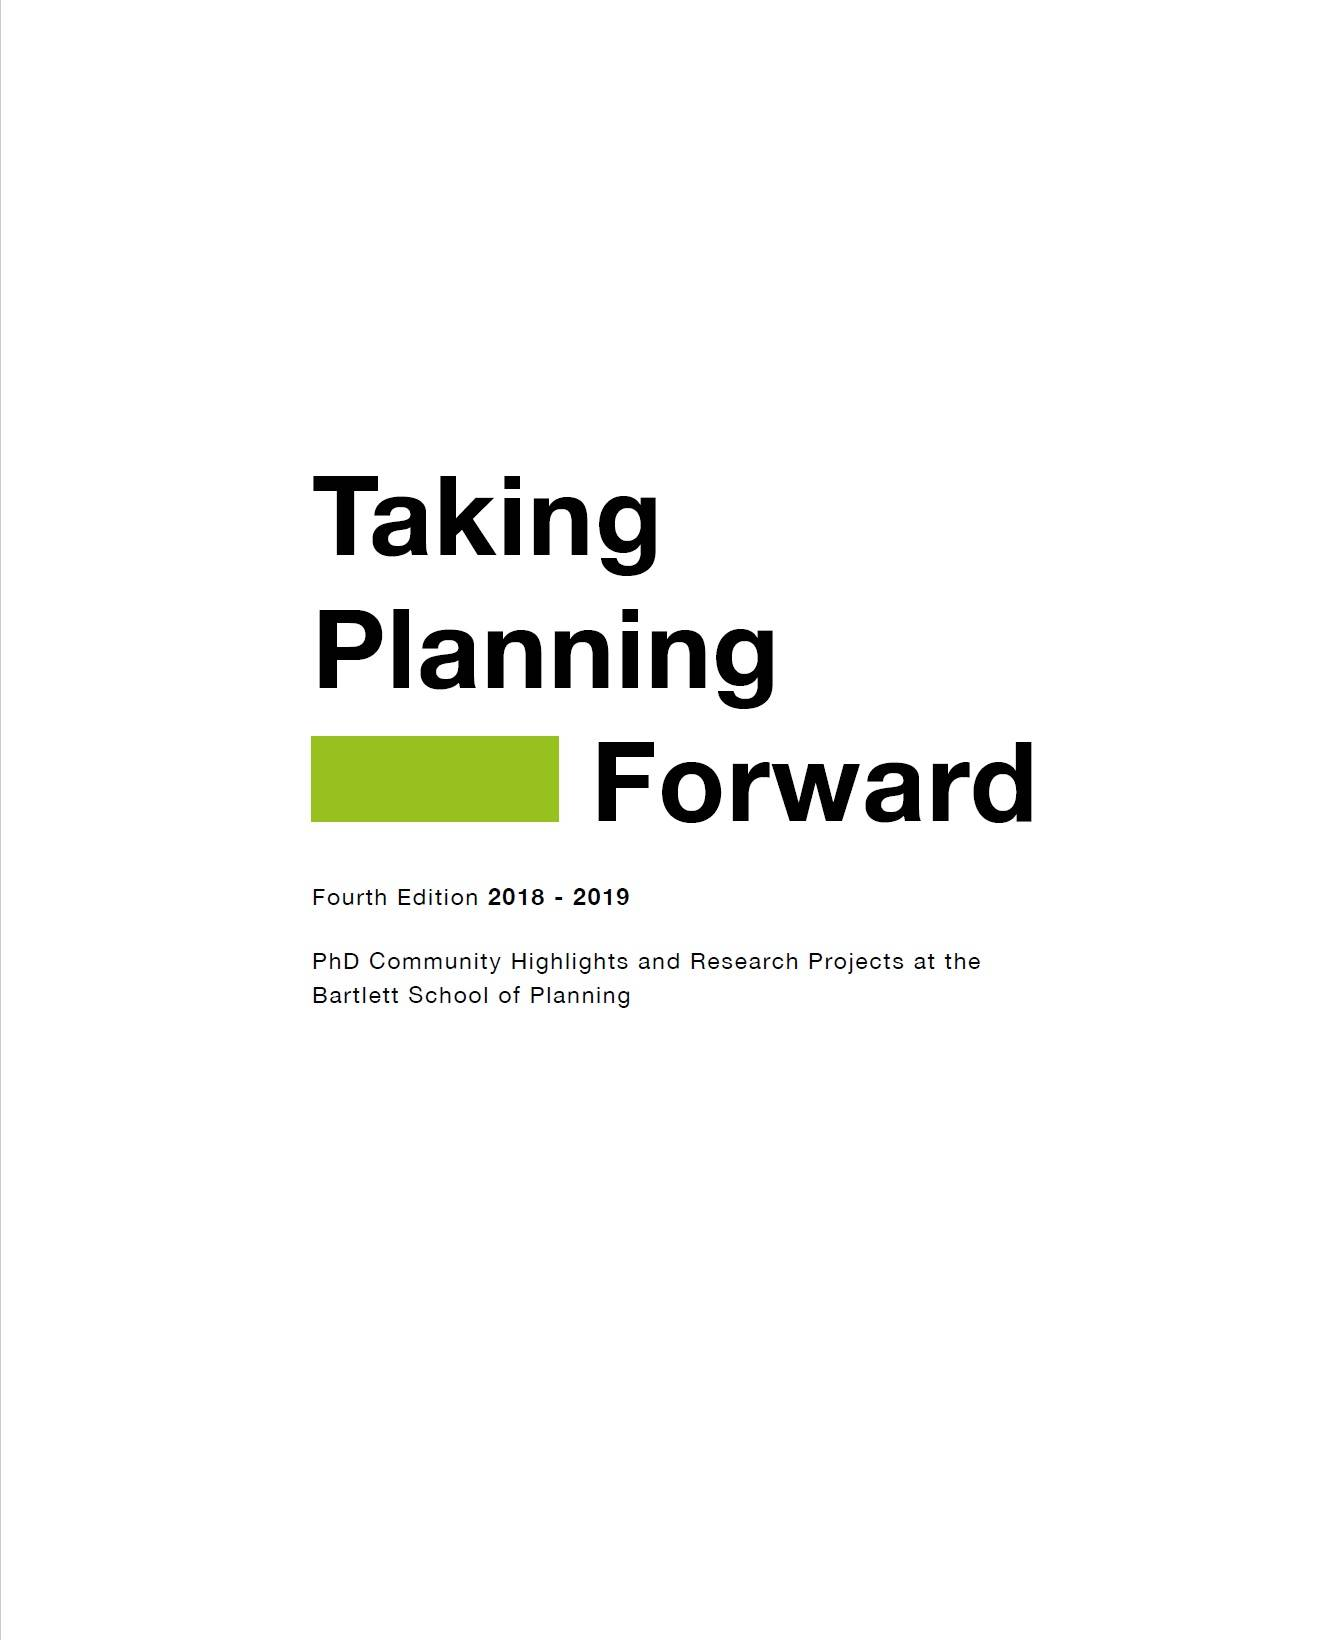 Taking Planning Forward 2018-19 catalogue cover